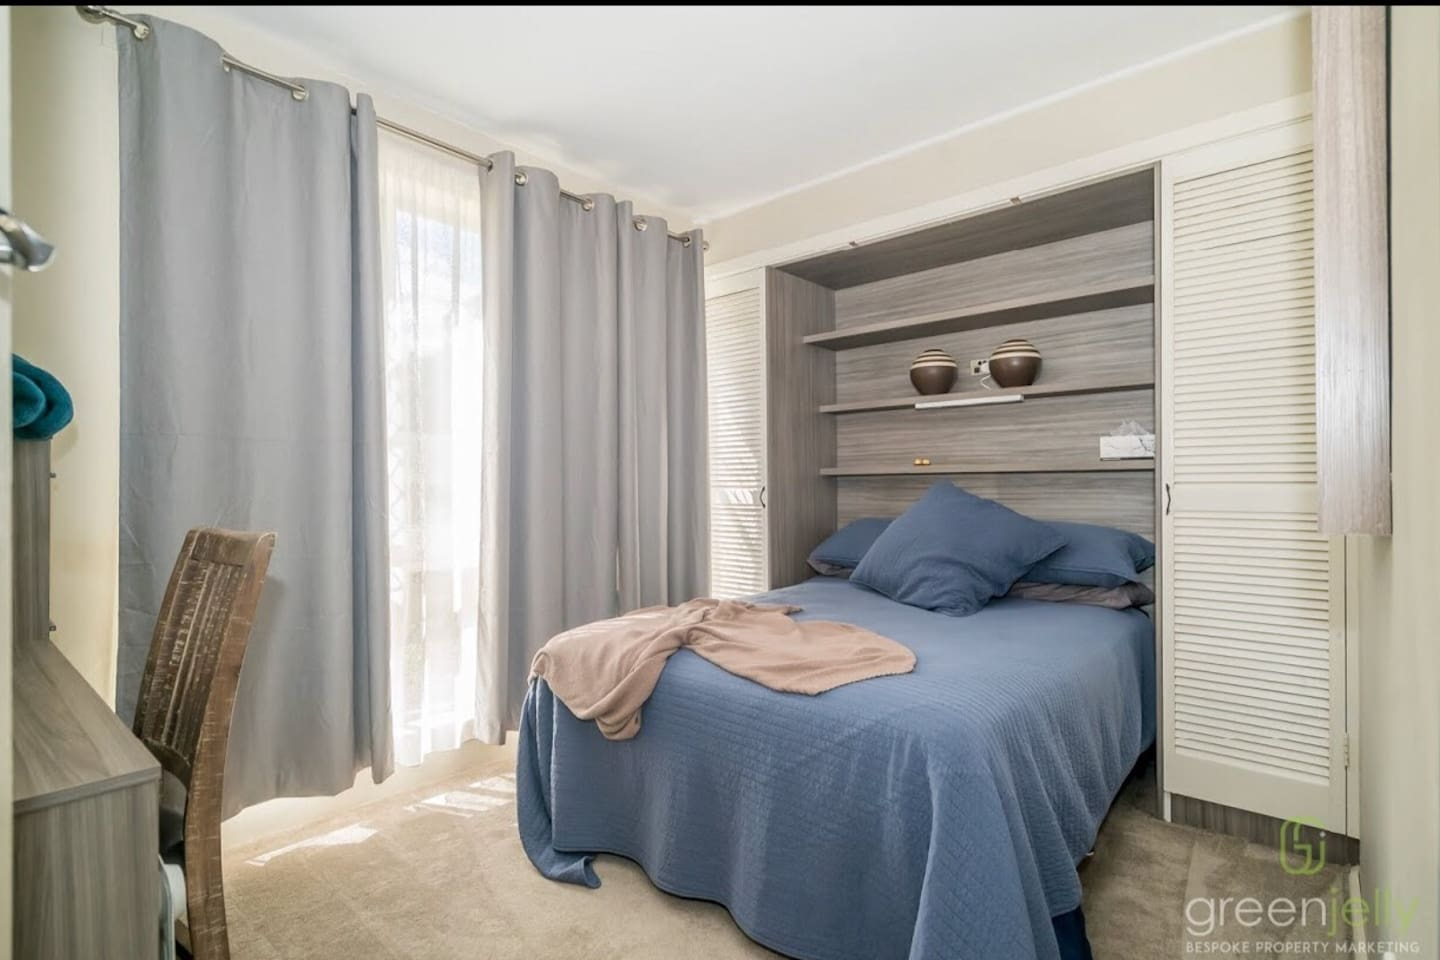 Bedroom with double bed, good quality linen with heater, fan and plush blankets for comfort.